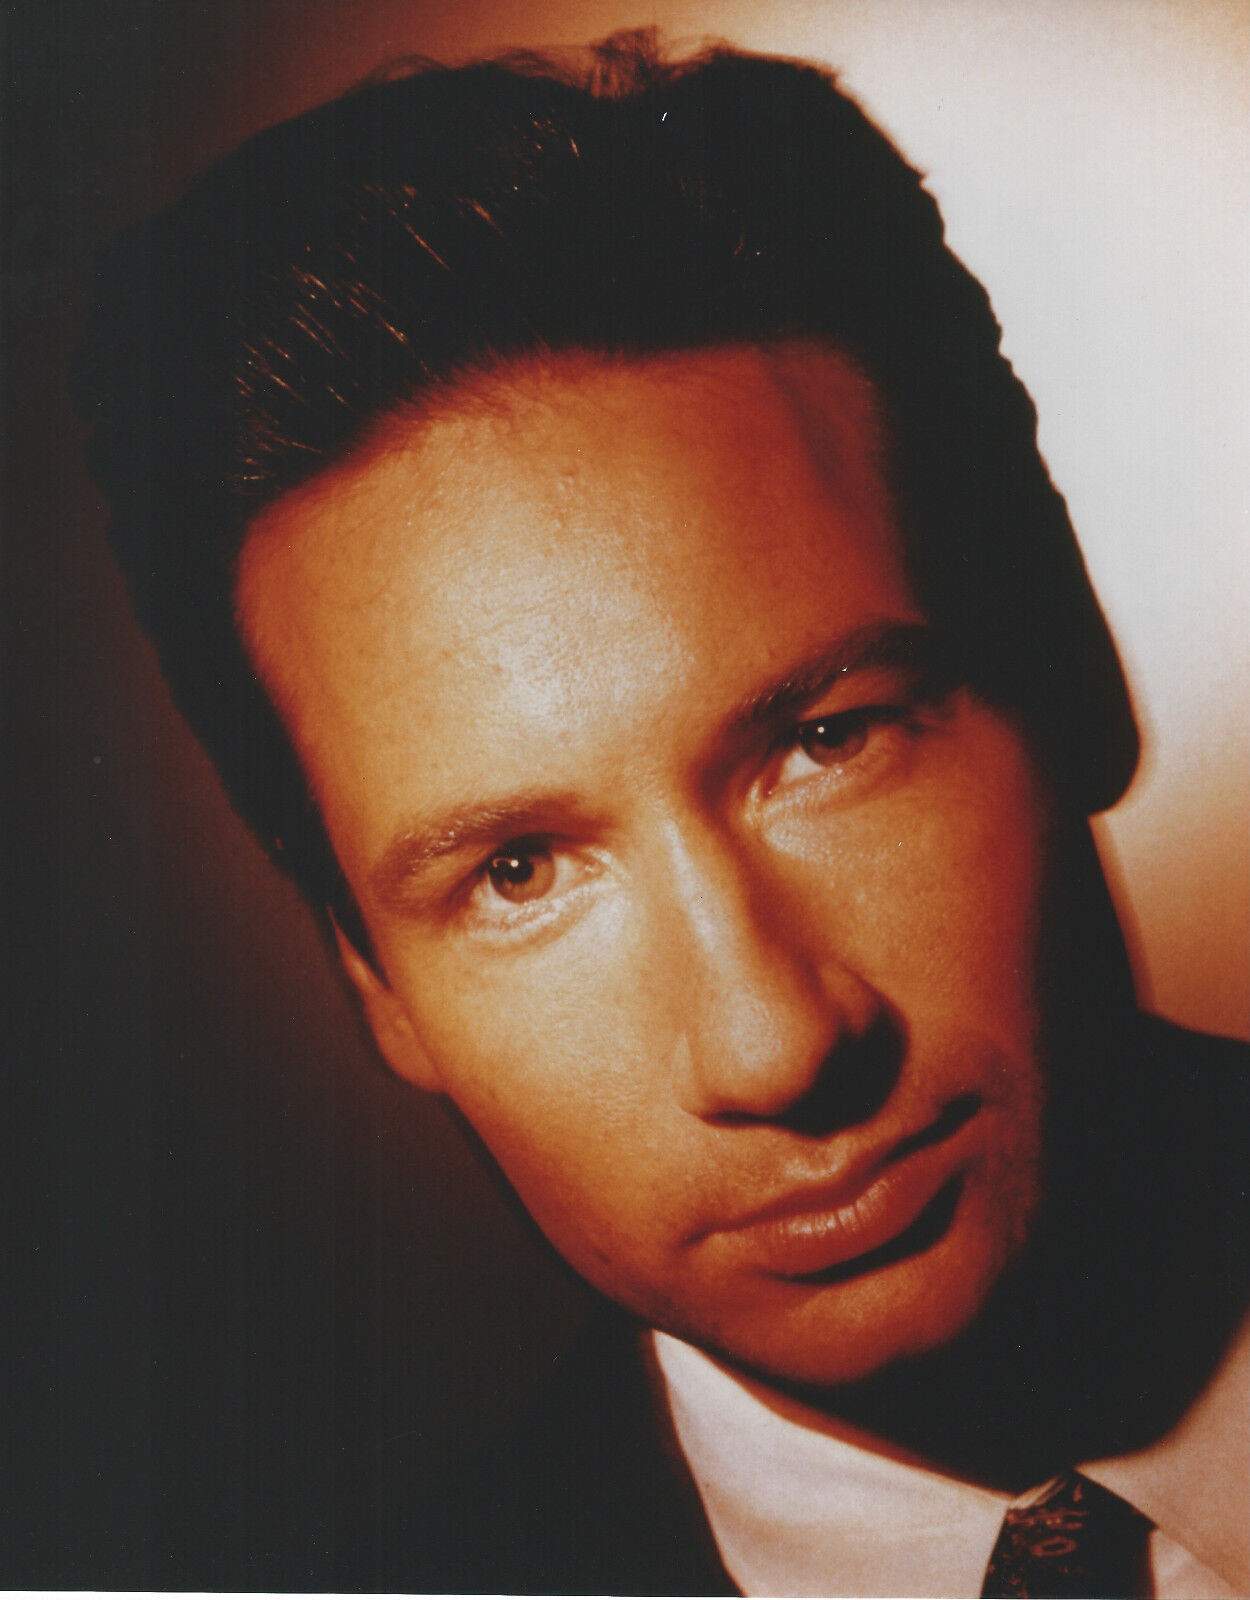 DAVID DUCHOVNY X-FILES 8 X 10 PHOTO WITH ULTRA PRO TOPLOADER - $3.99